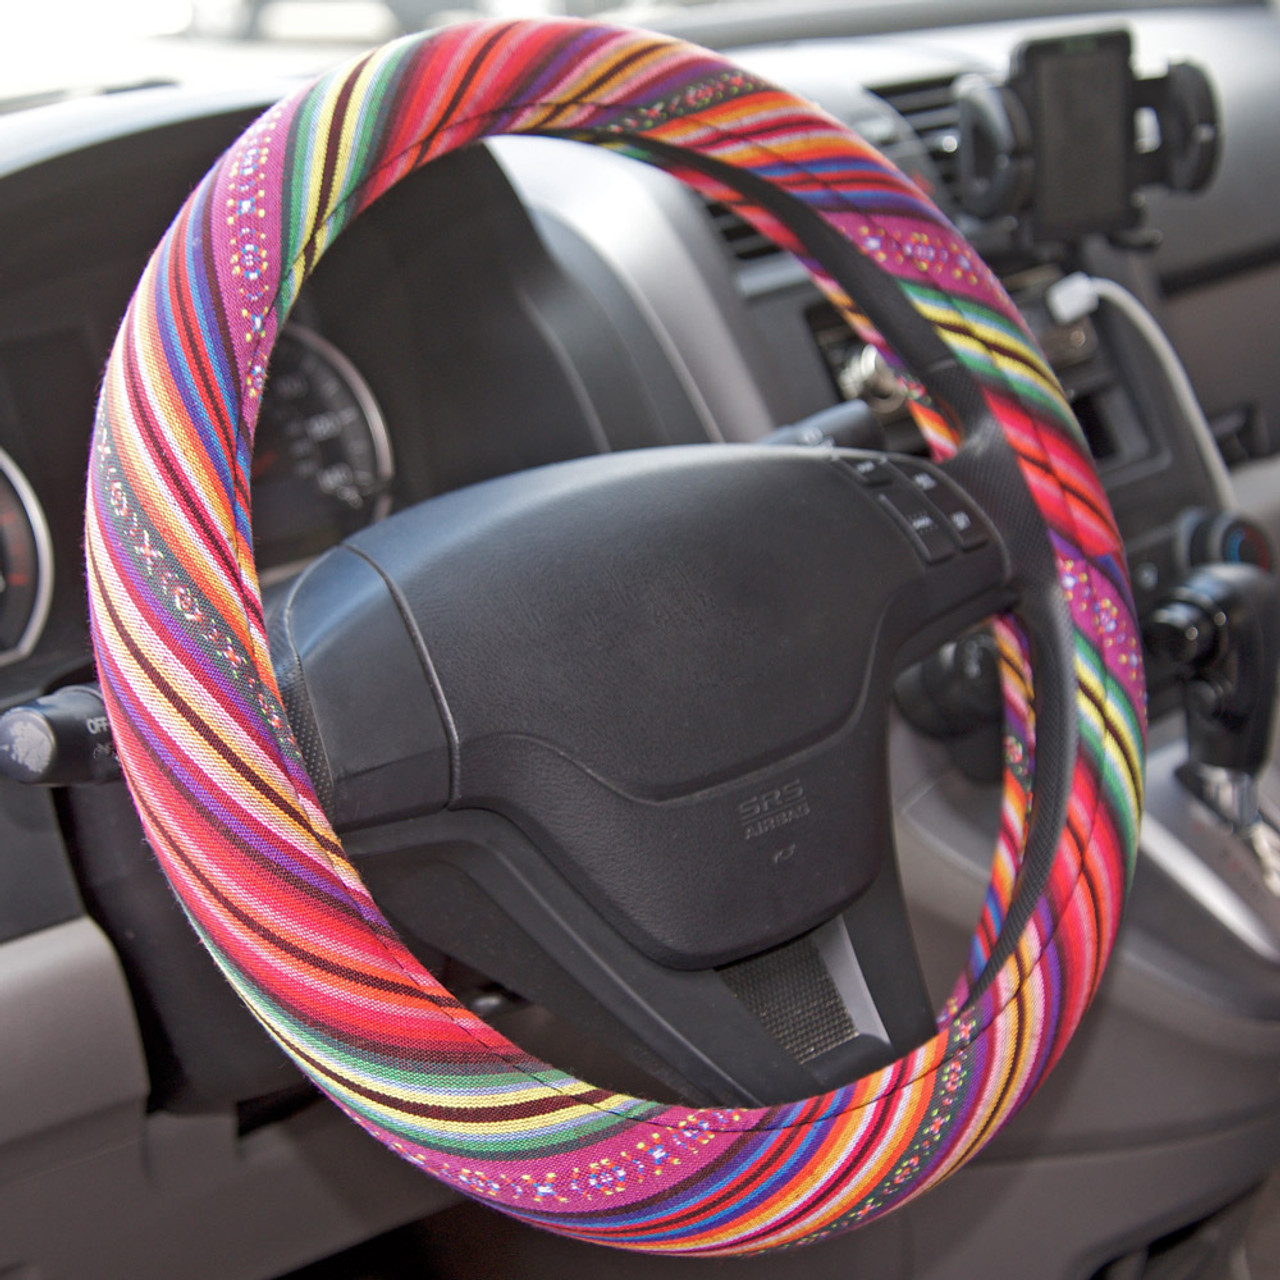 BDKUSA Steering Wheel Cover Rose Standard Size 14.5 to 15.5 inches